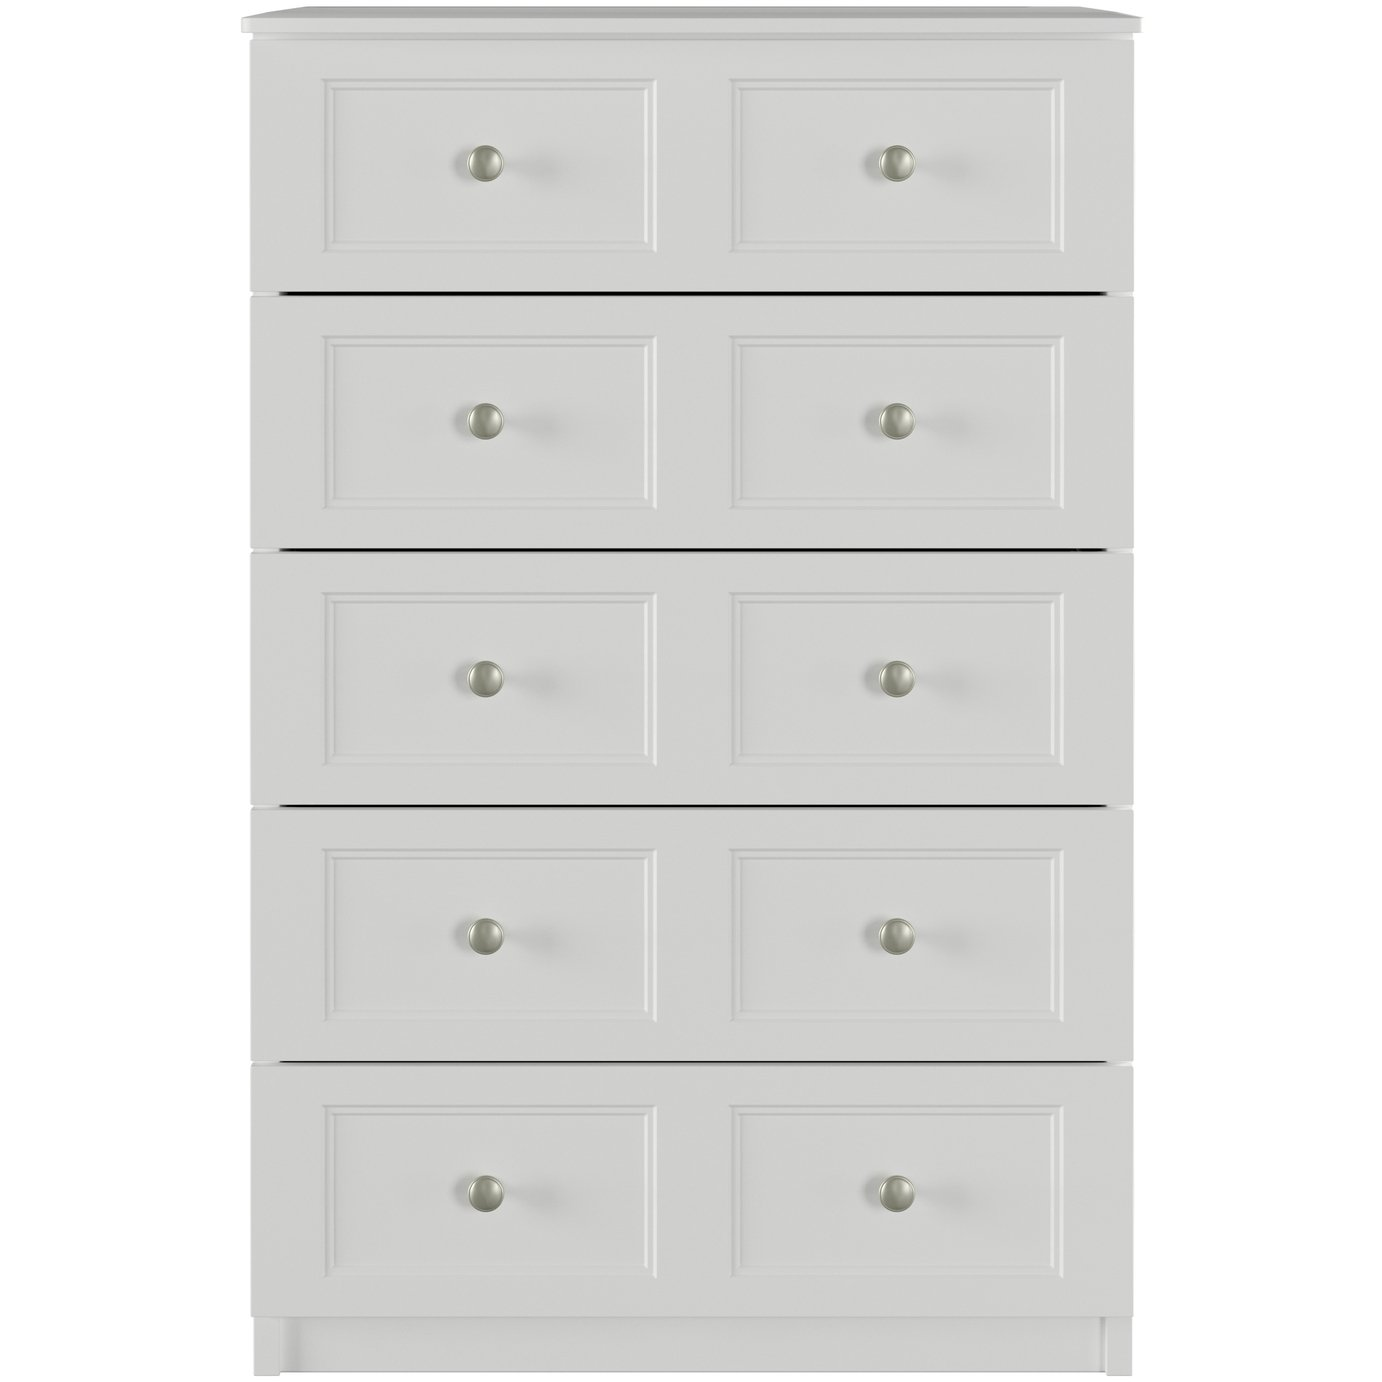 One Call Bexley 5 Drawer Chest of Drawers - White